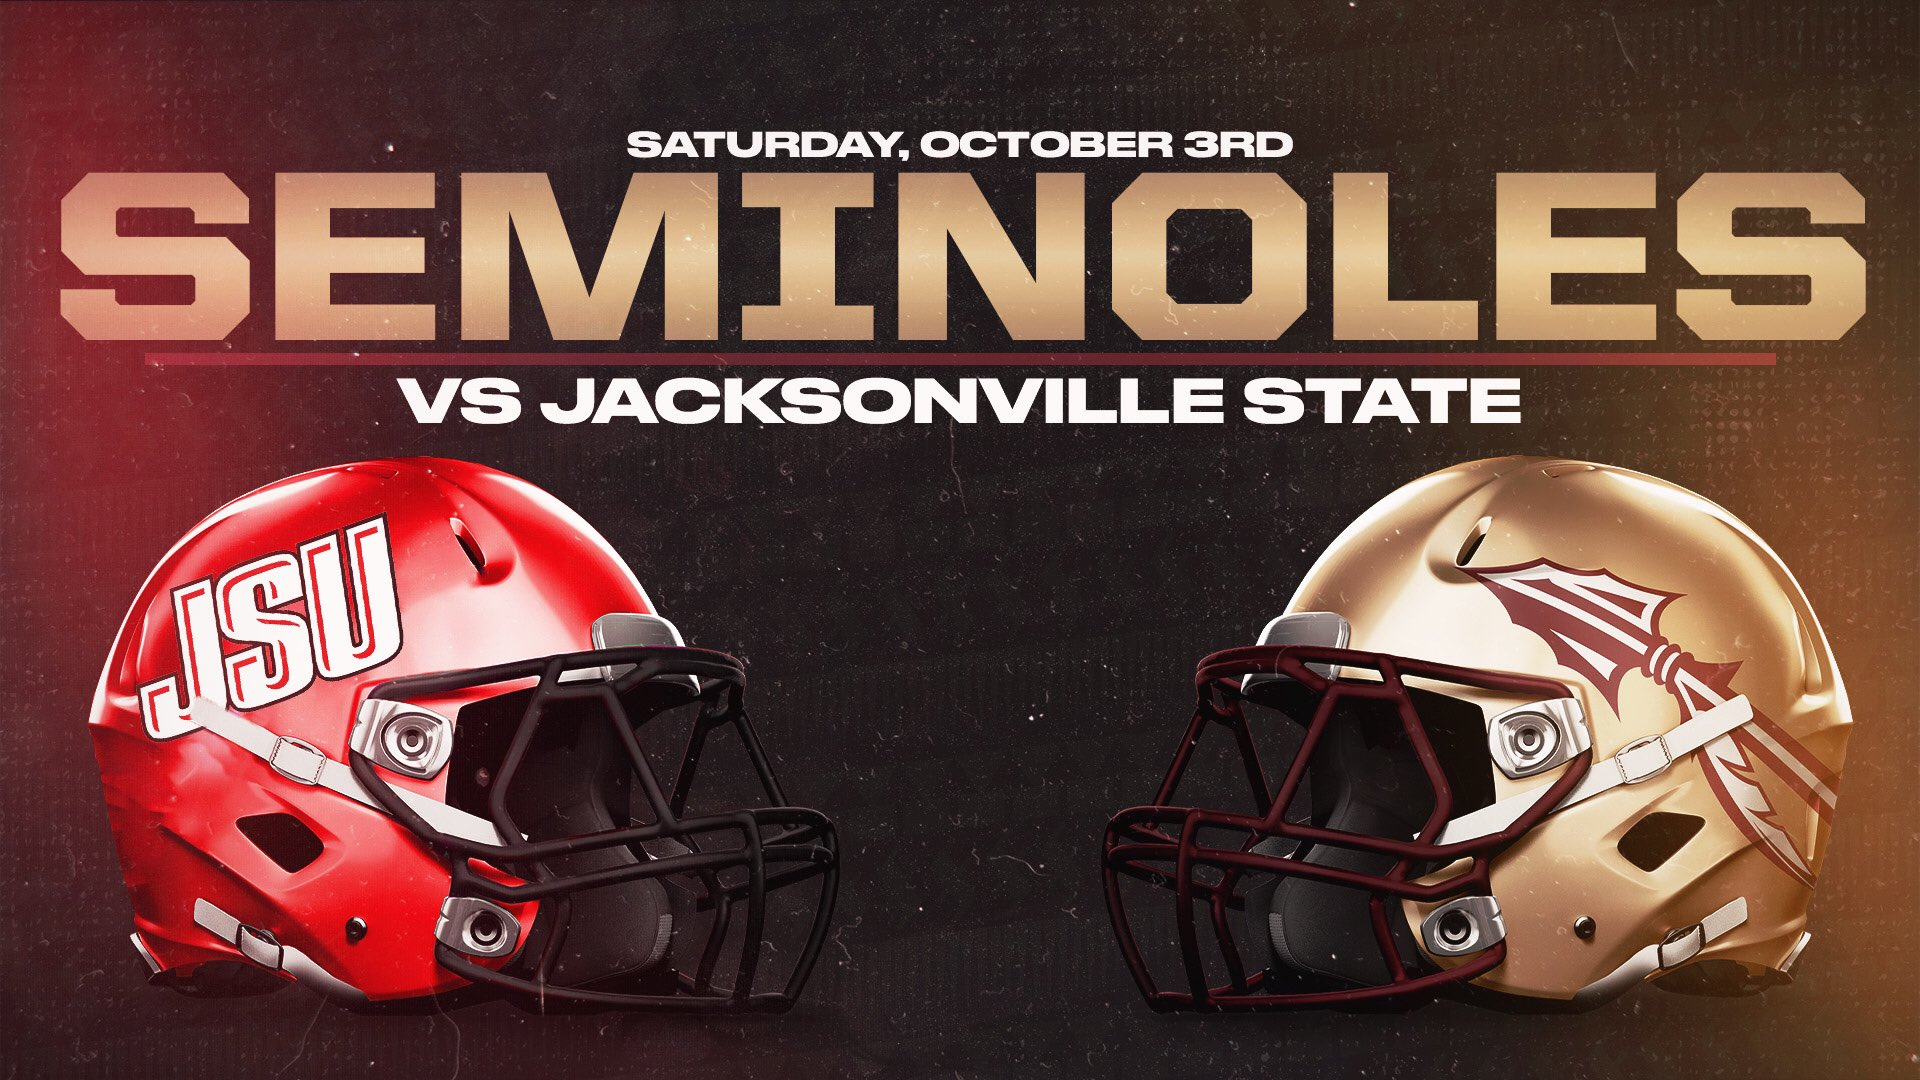 Fsu To Face Jacksonville State In Non Conference Game On Oct 3